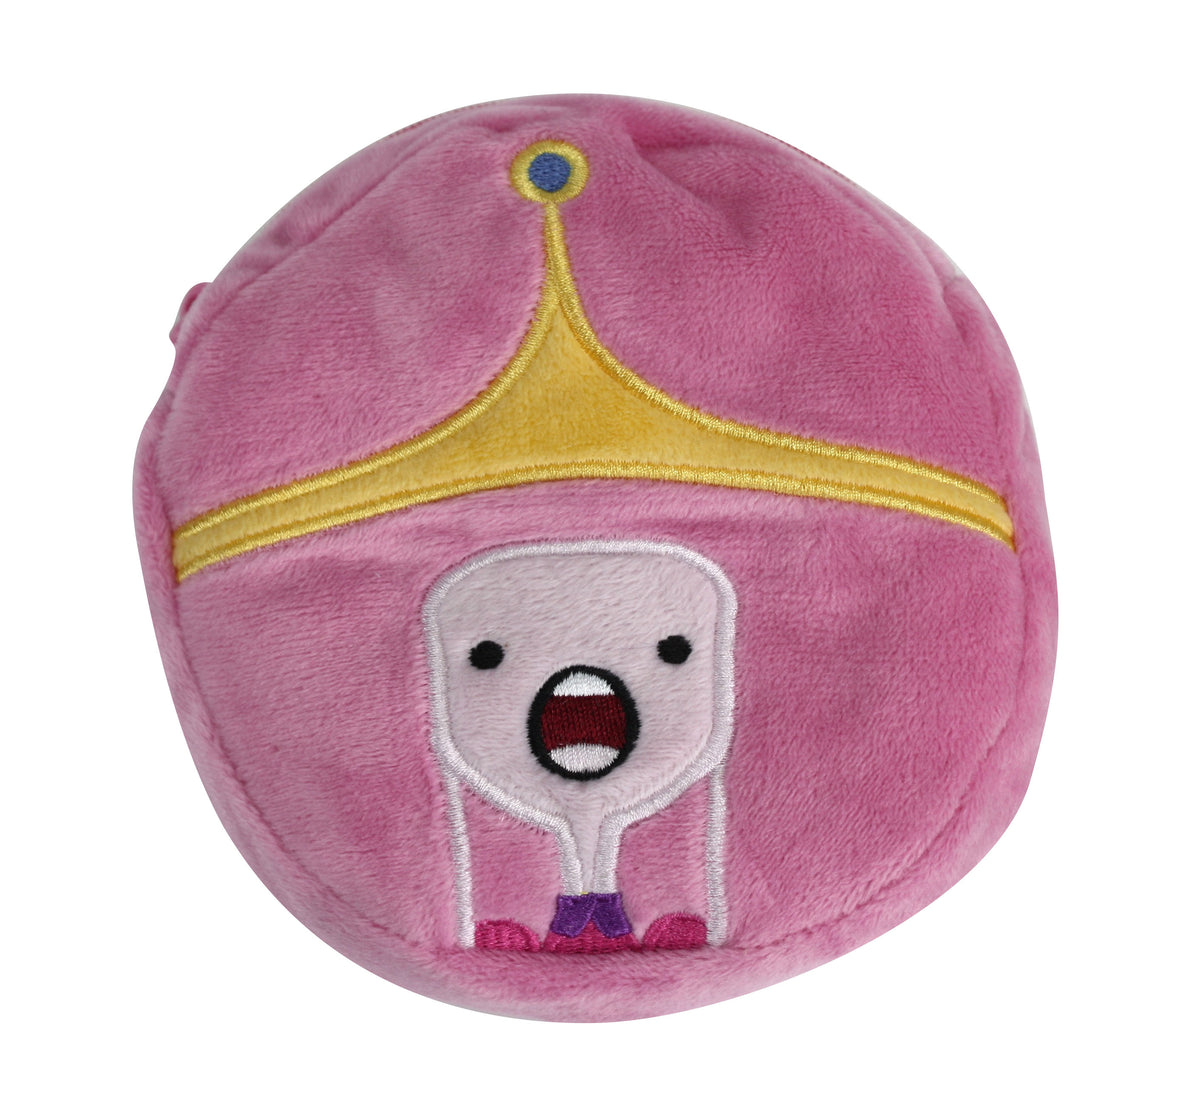 Adventure Time Princess Bubblegum Plush Coin Purse, Soft Toy, 13cm - farangshop-co